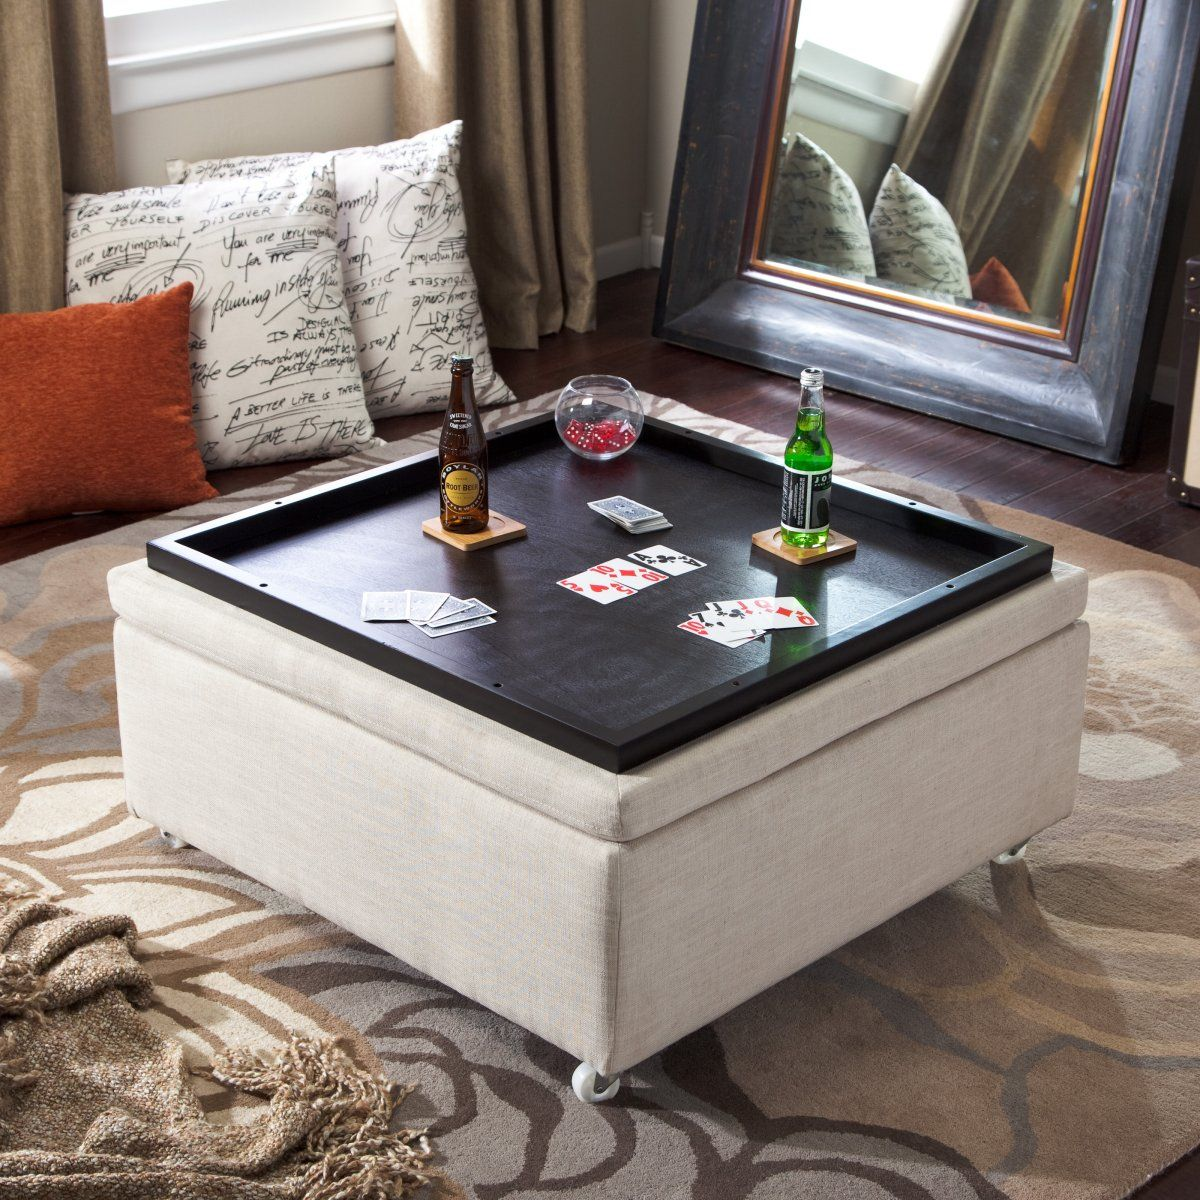 Merihill Coffee Table With Ottoman: Corbett Linen Coffee Table Storage Ottoman